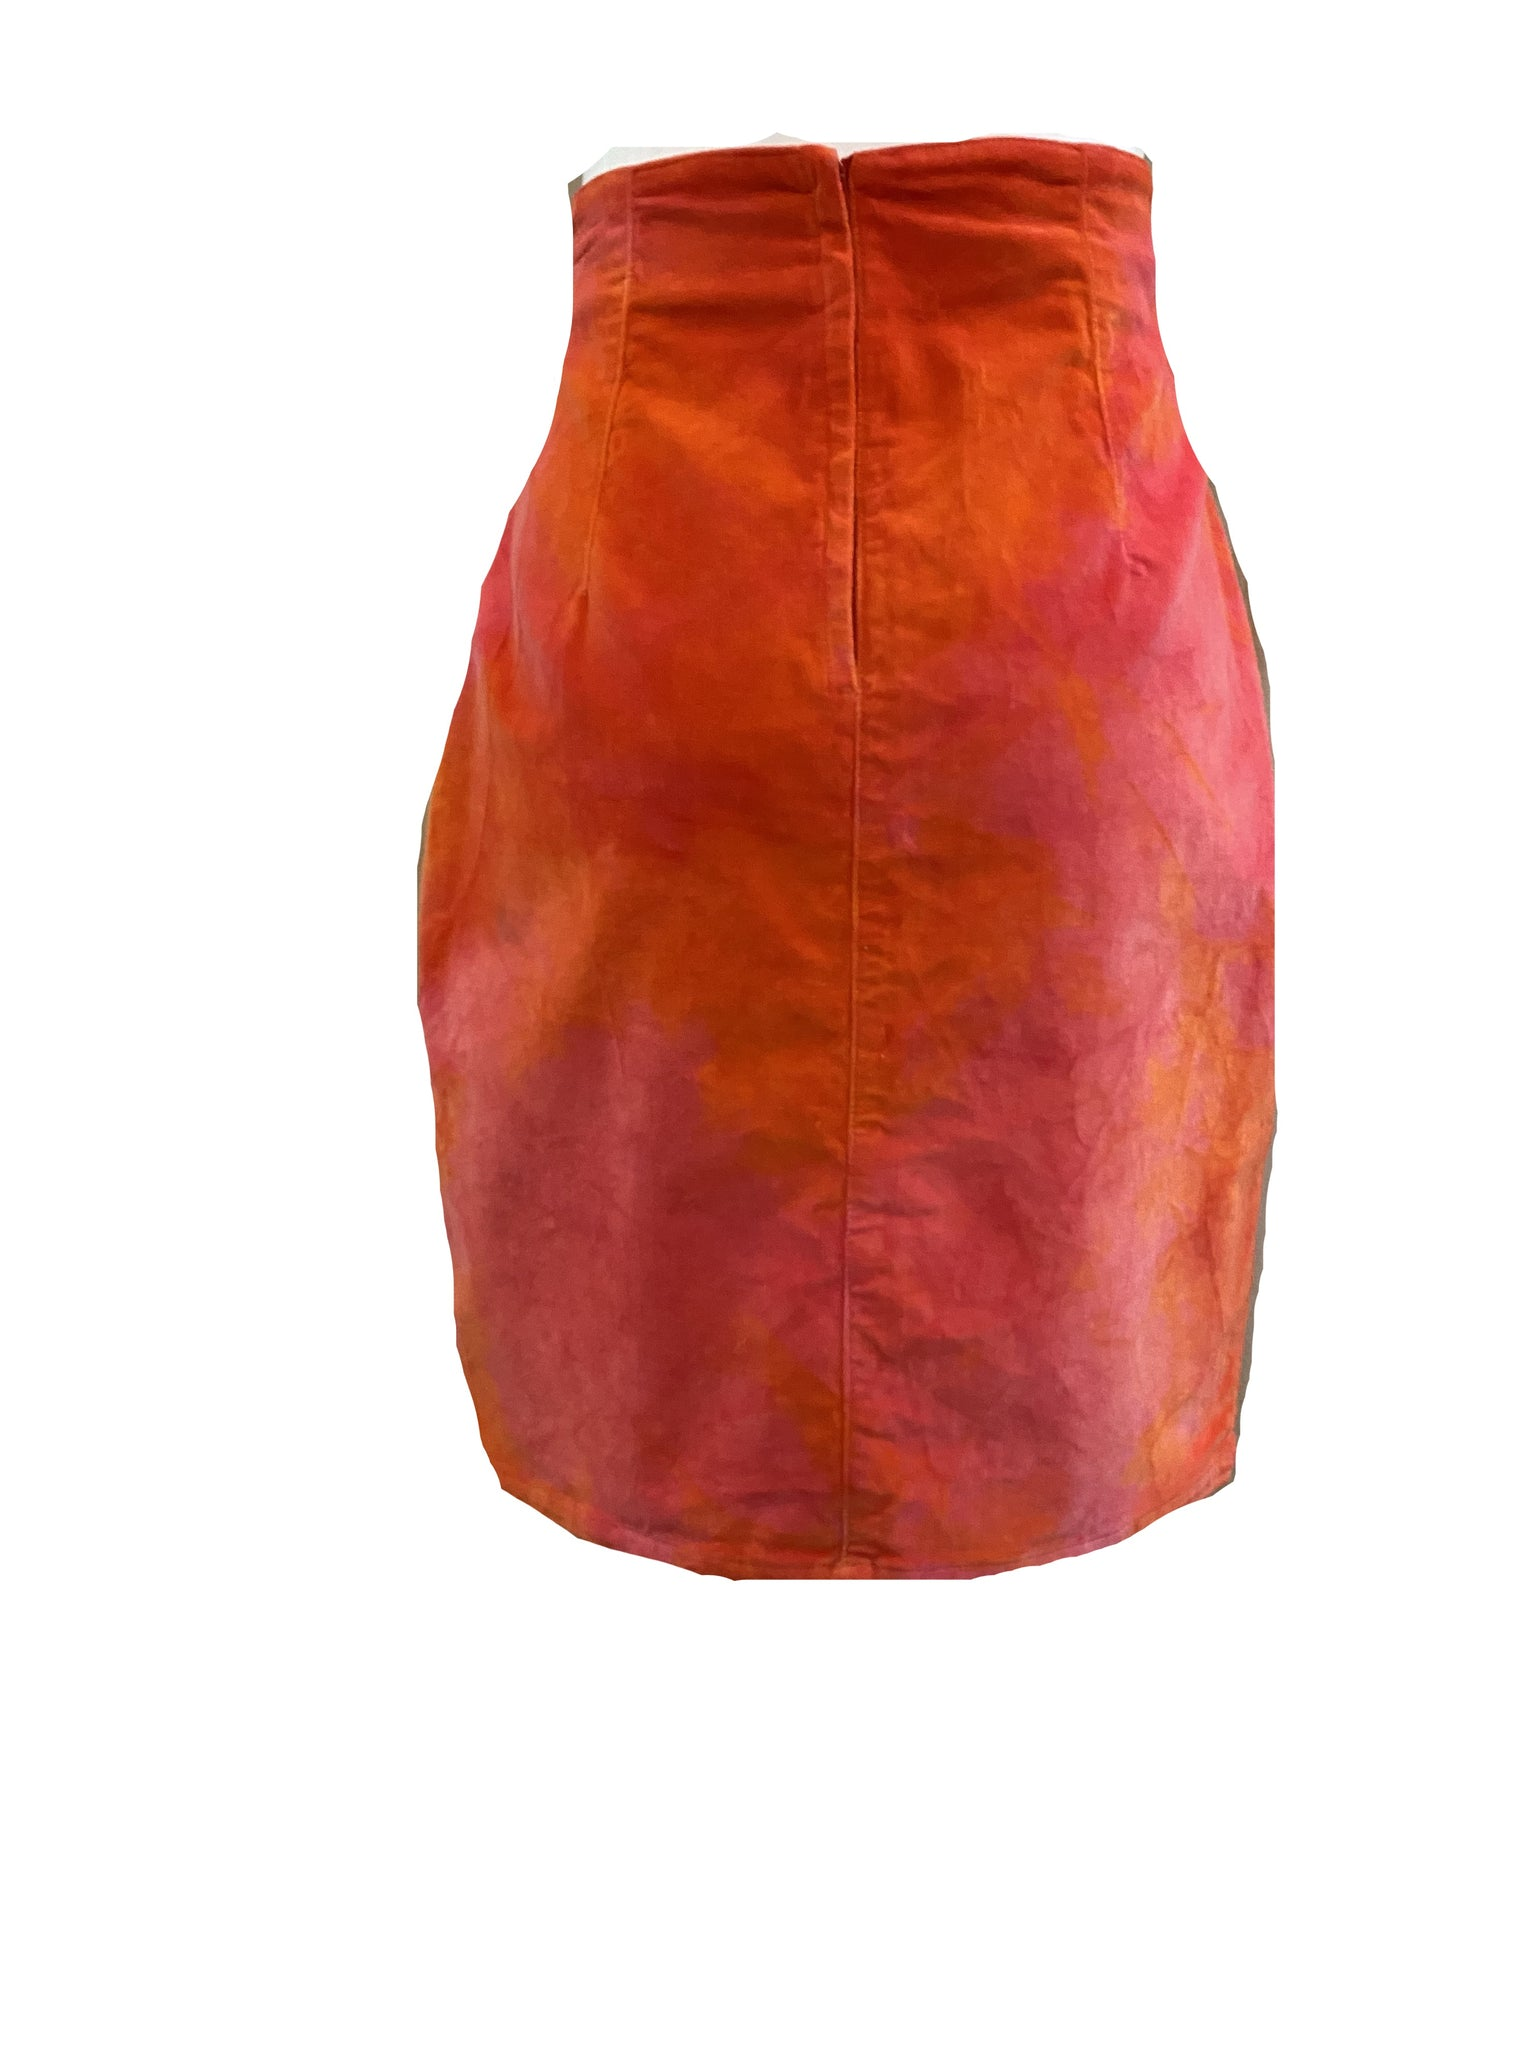 Blumarine 90s Orange Tie Dye Velvet Skirt BACK 2 of 4